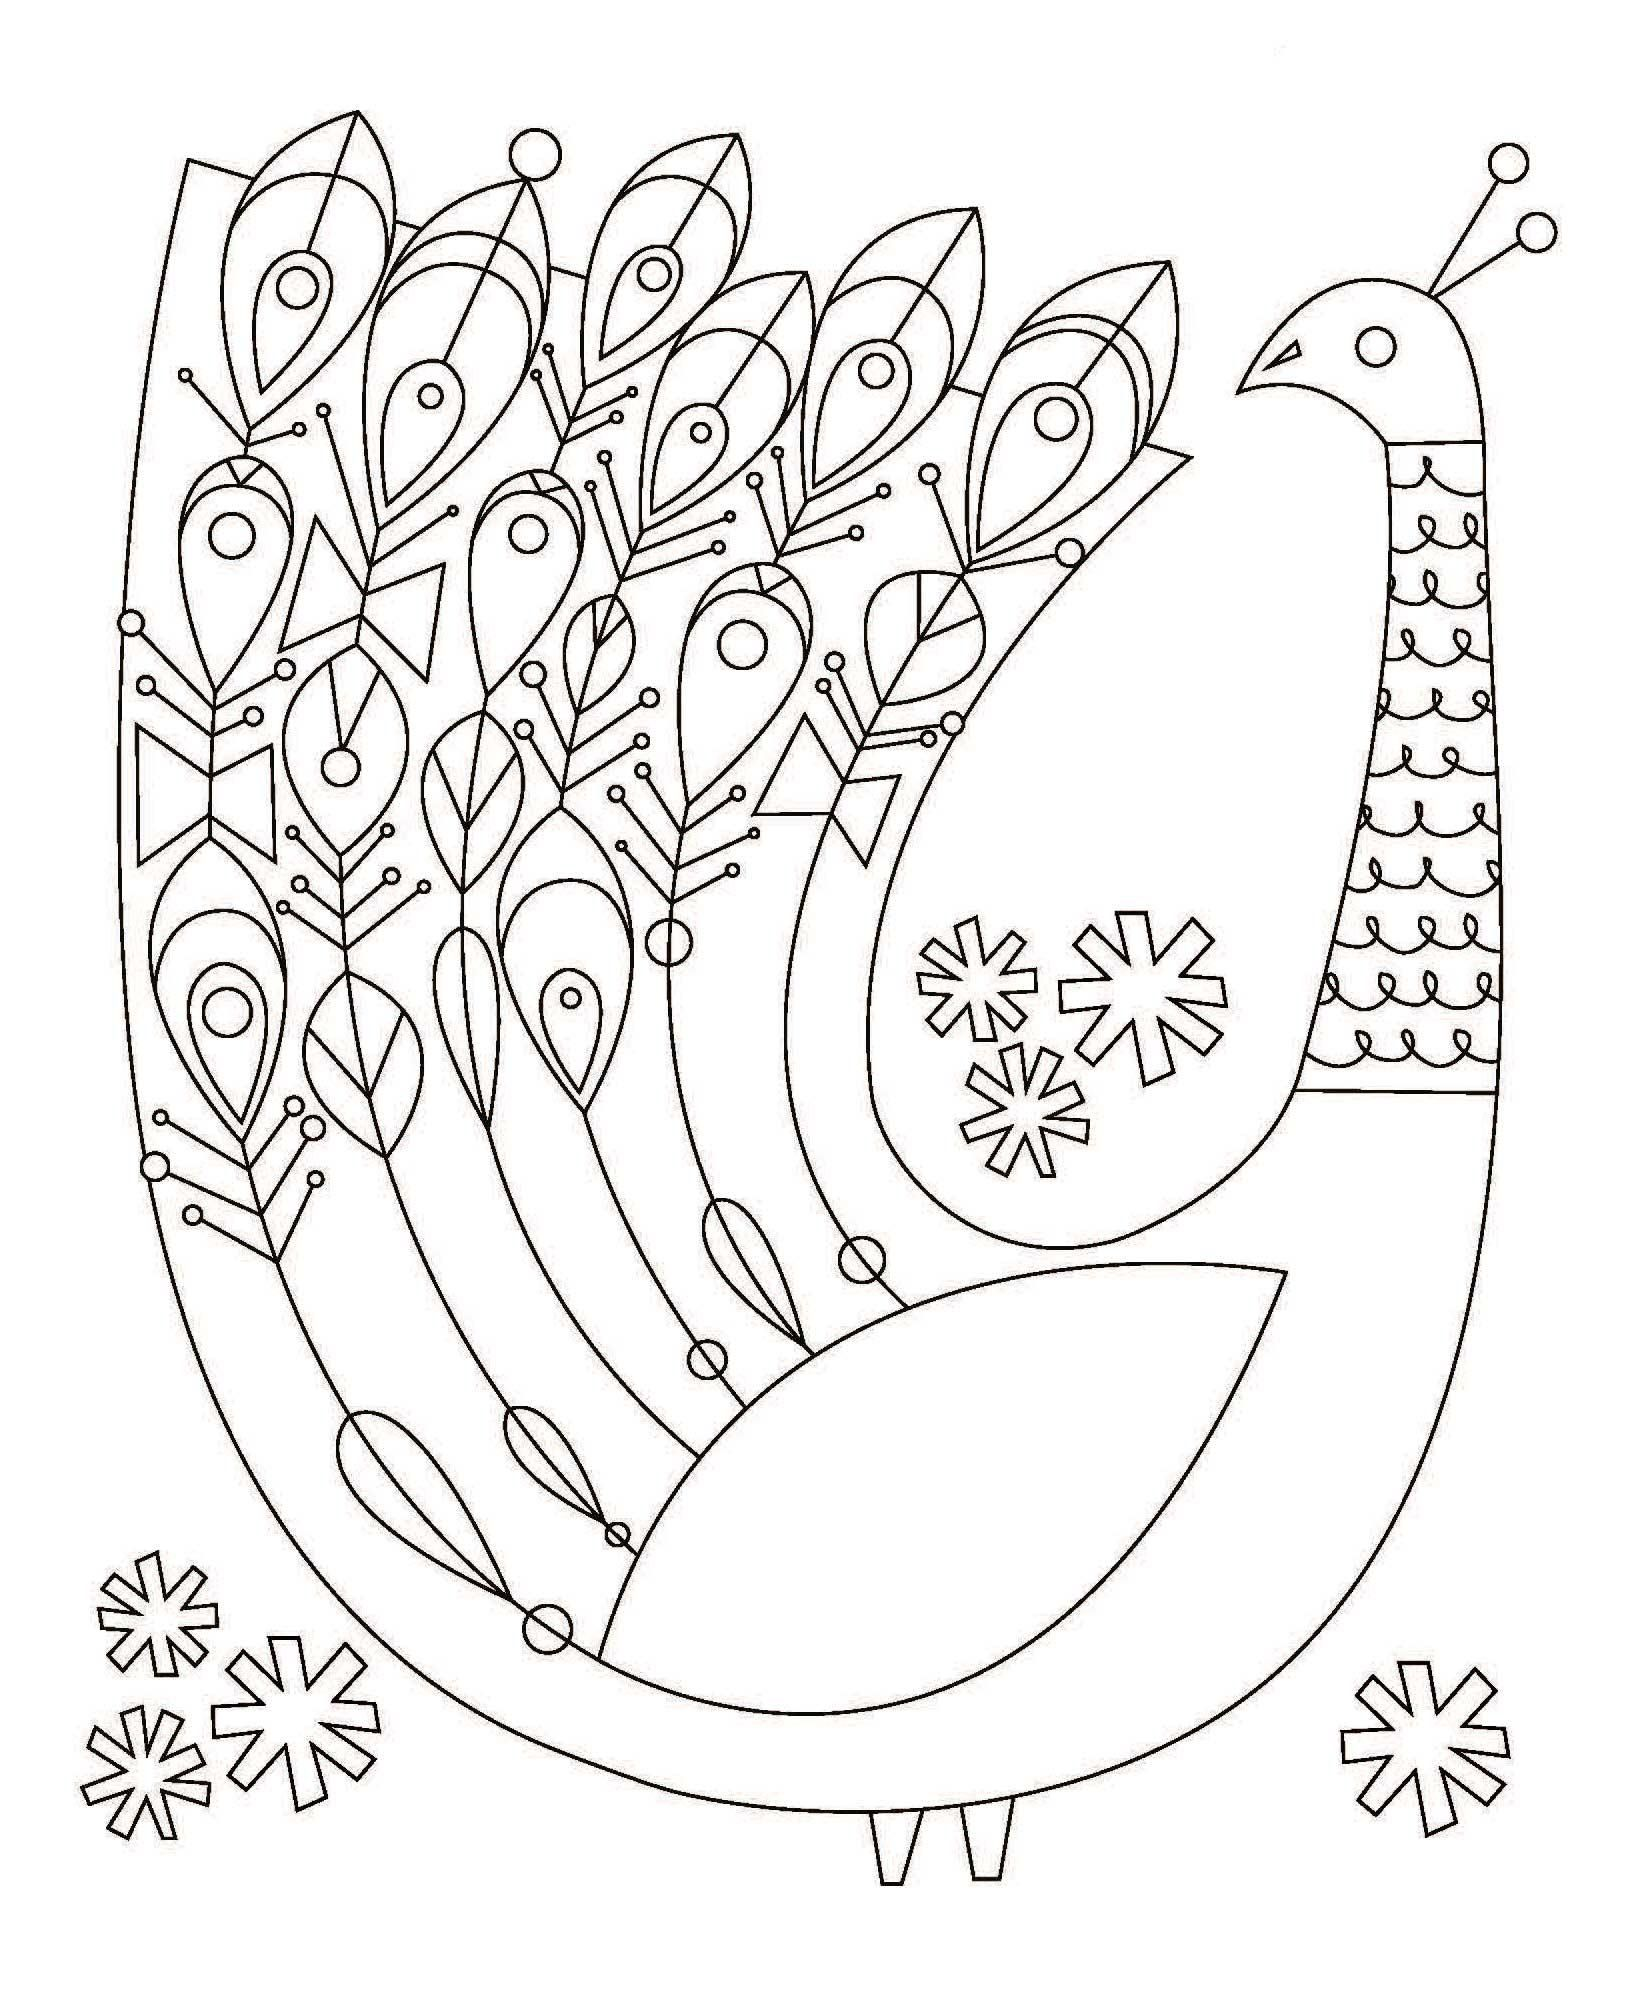 Joyful Designs Adult Coloring Book (31 stress-relieving designs ... | 1998x1650